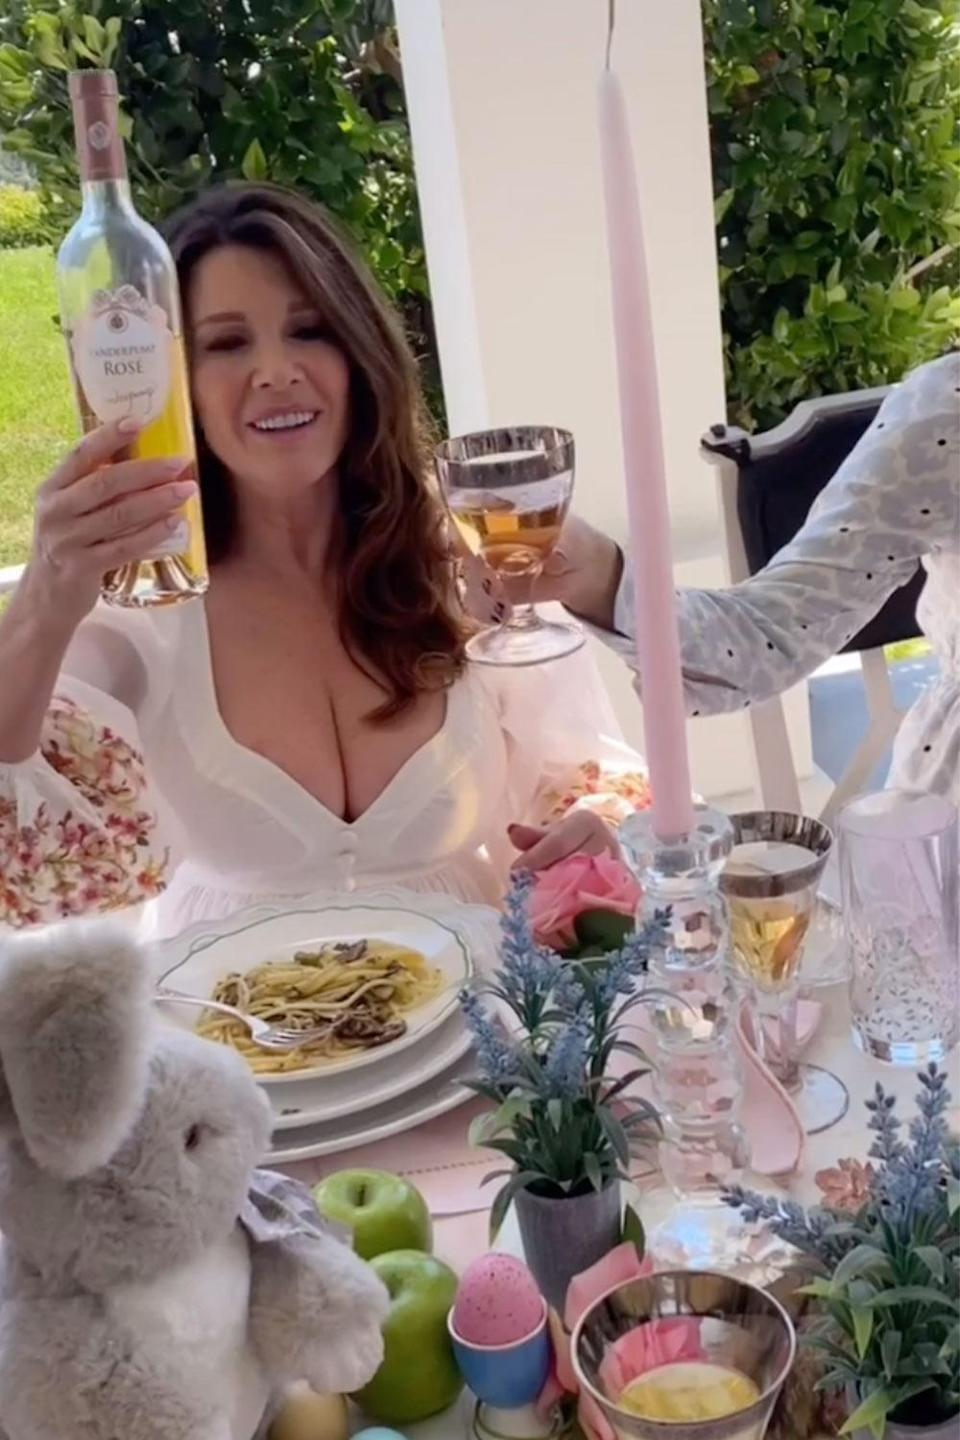 "<p>What a spread! The former <em><a href=""https://people.com/tag/real-housewives-of-beverly-hills/"" rel=""nofollow noopener"" target=""_blank"" data-ylk=""slk:Real Housewives of Beverly Hills"" class=""link rapid-noclick-resp"">Real Housewives of Beverly Hills</a></em> star shared her lavish Easter brunch, which included truffle pasta and lots of wine.</p>"